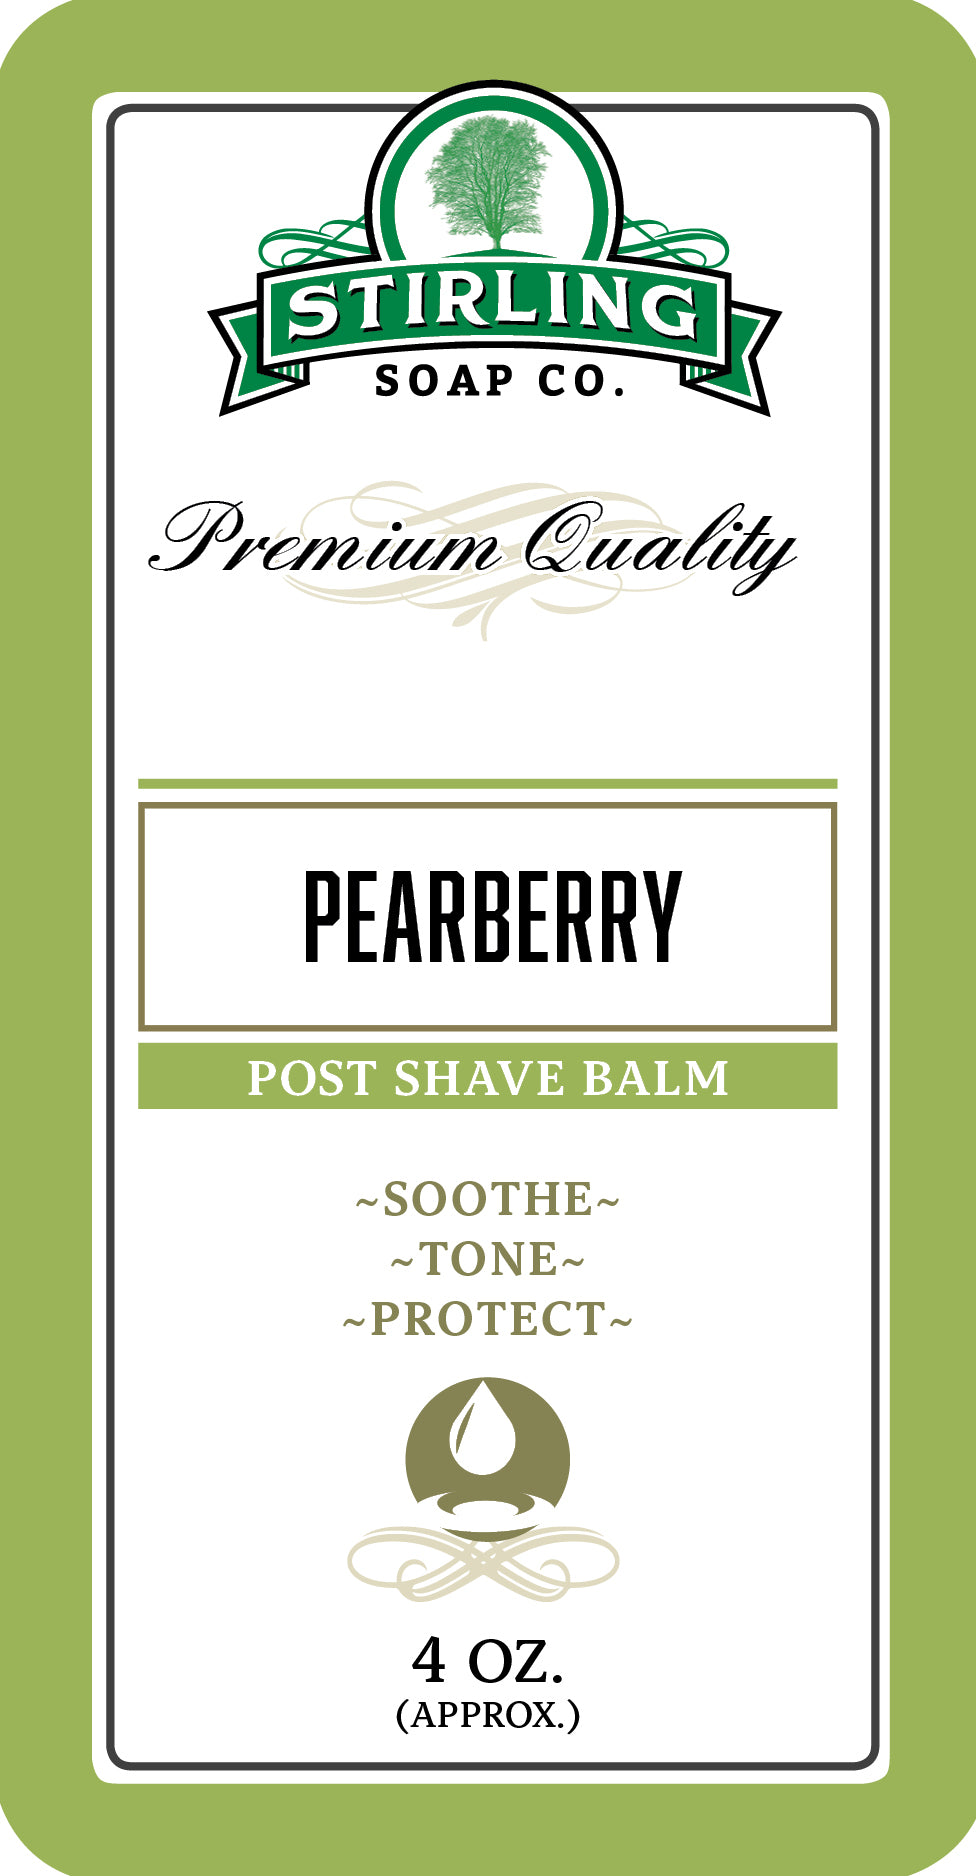 Pearberry - Post-Shave Balm